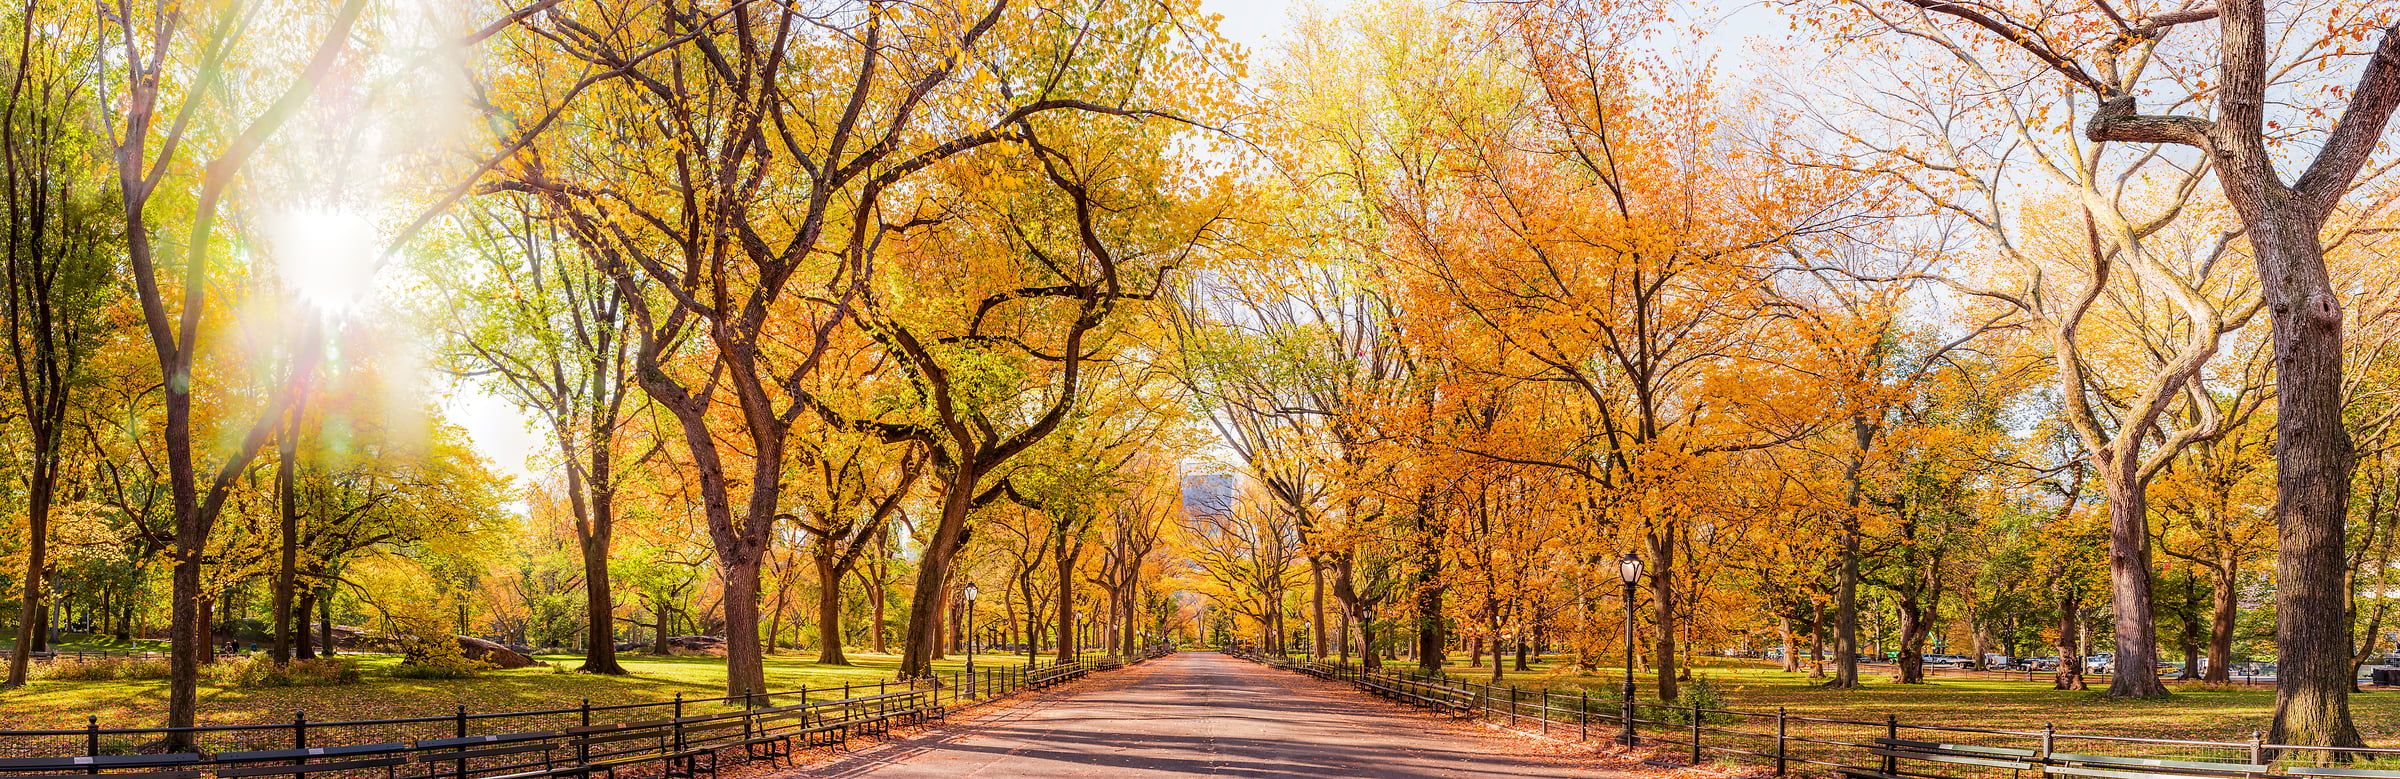 4,103 megapixels! A very high definition VAST photo of autumn trees on the Mall in Central Park in New York City at sunrise; created by Dan Piech